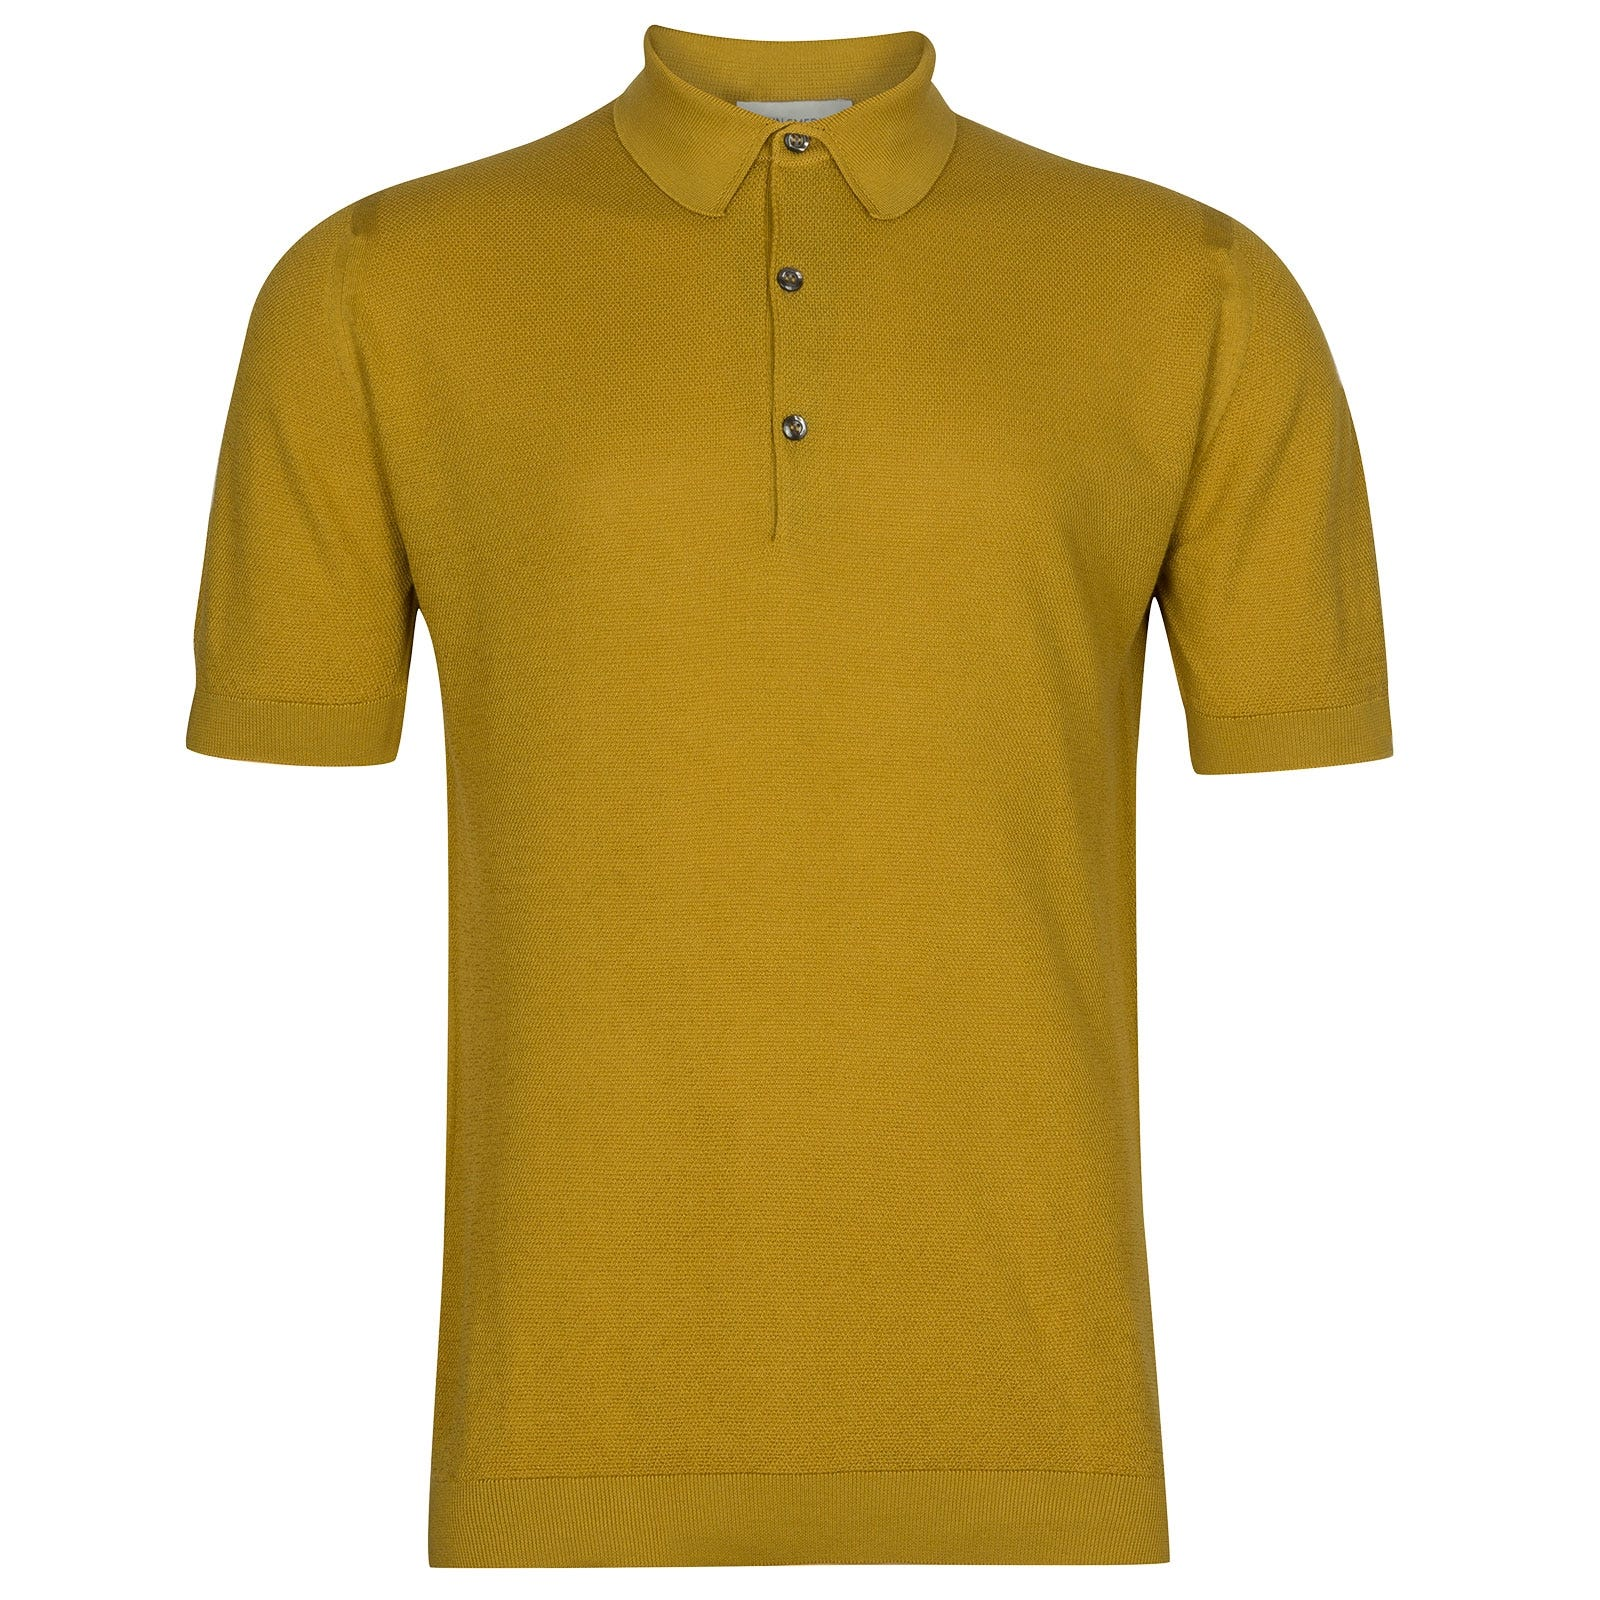 John Smedley Roth in Stamen Yellow Shirt-MED